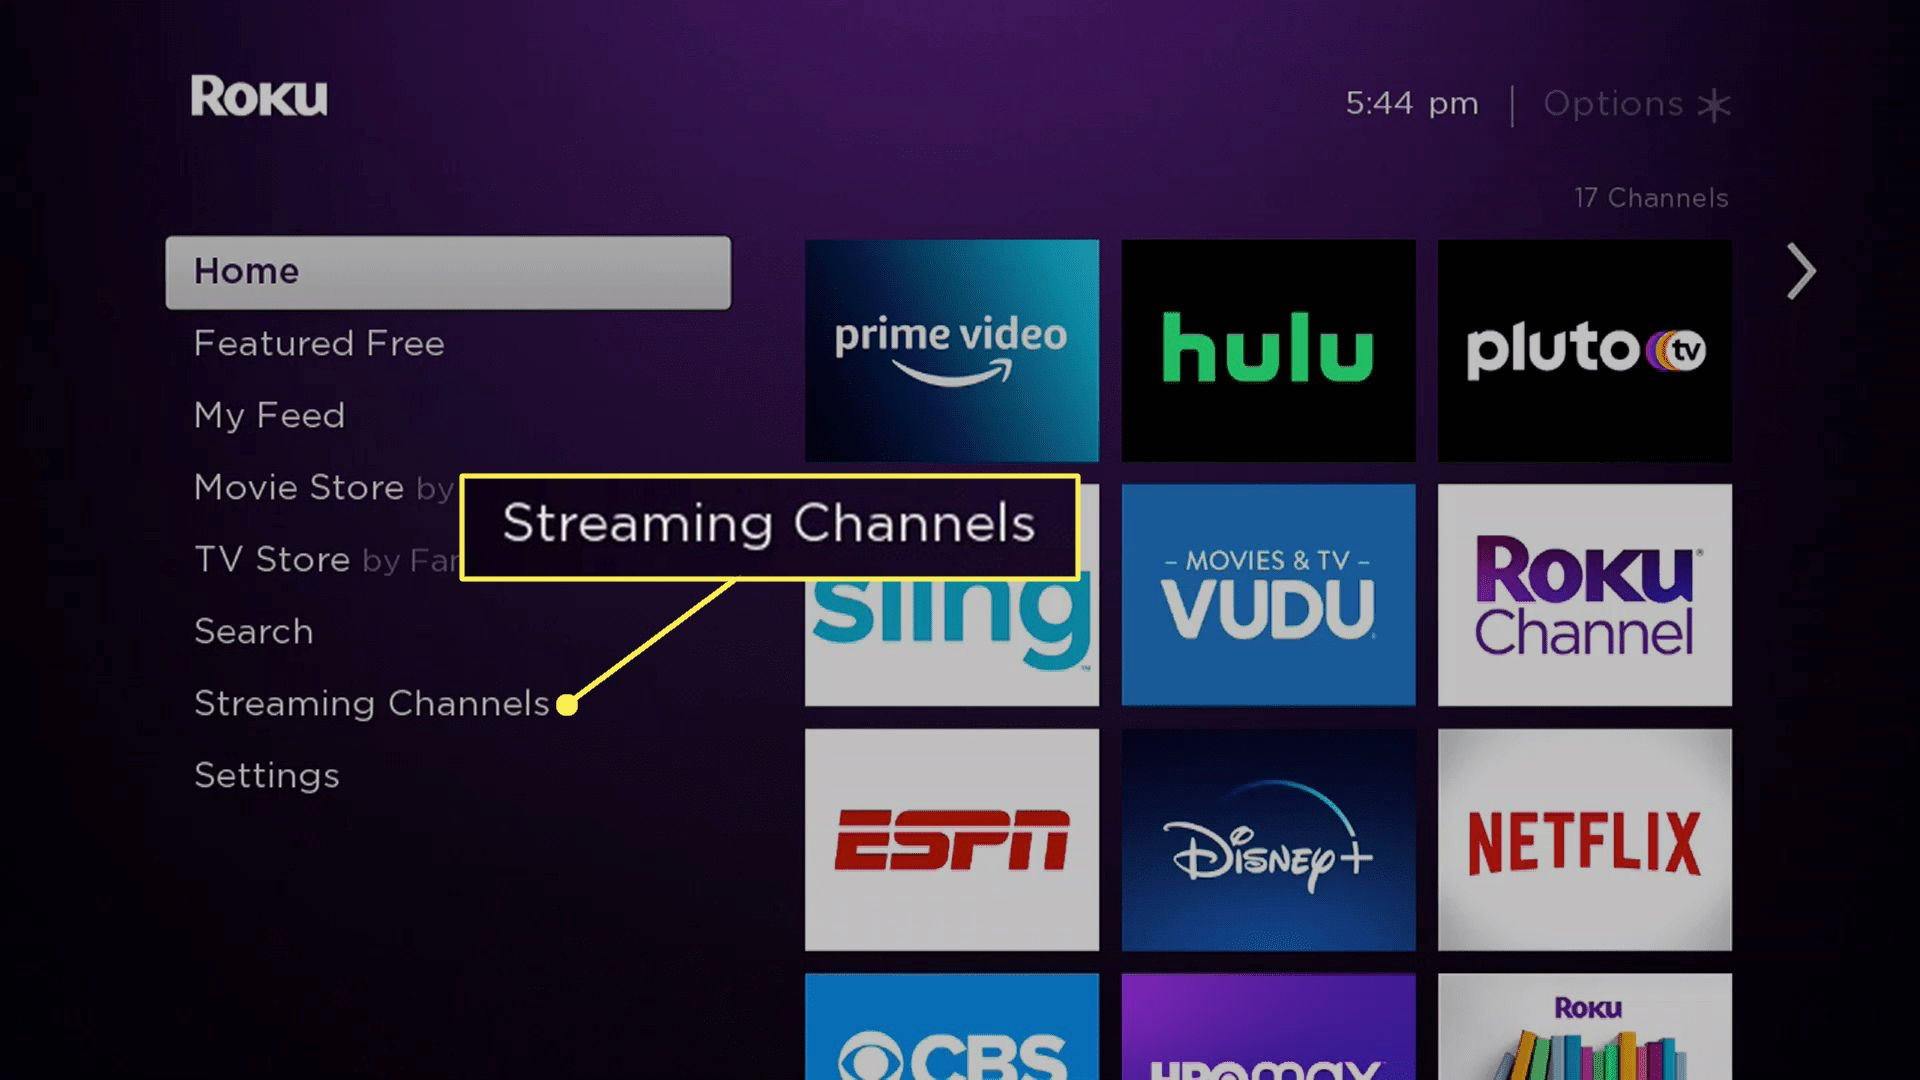 The main Roku menu with Streaming Channels highlighted.